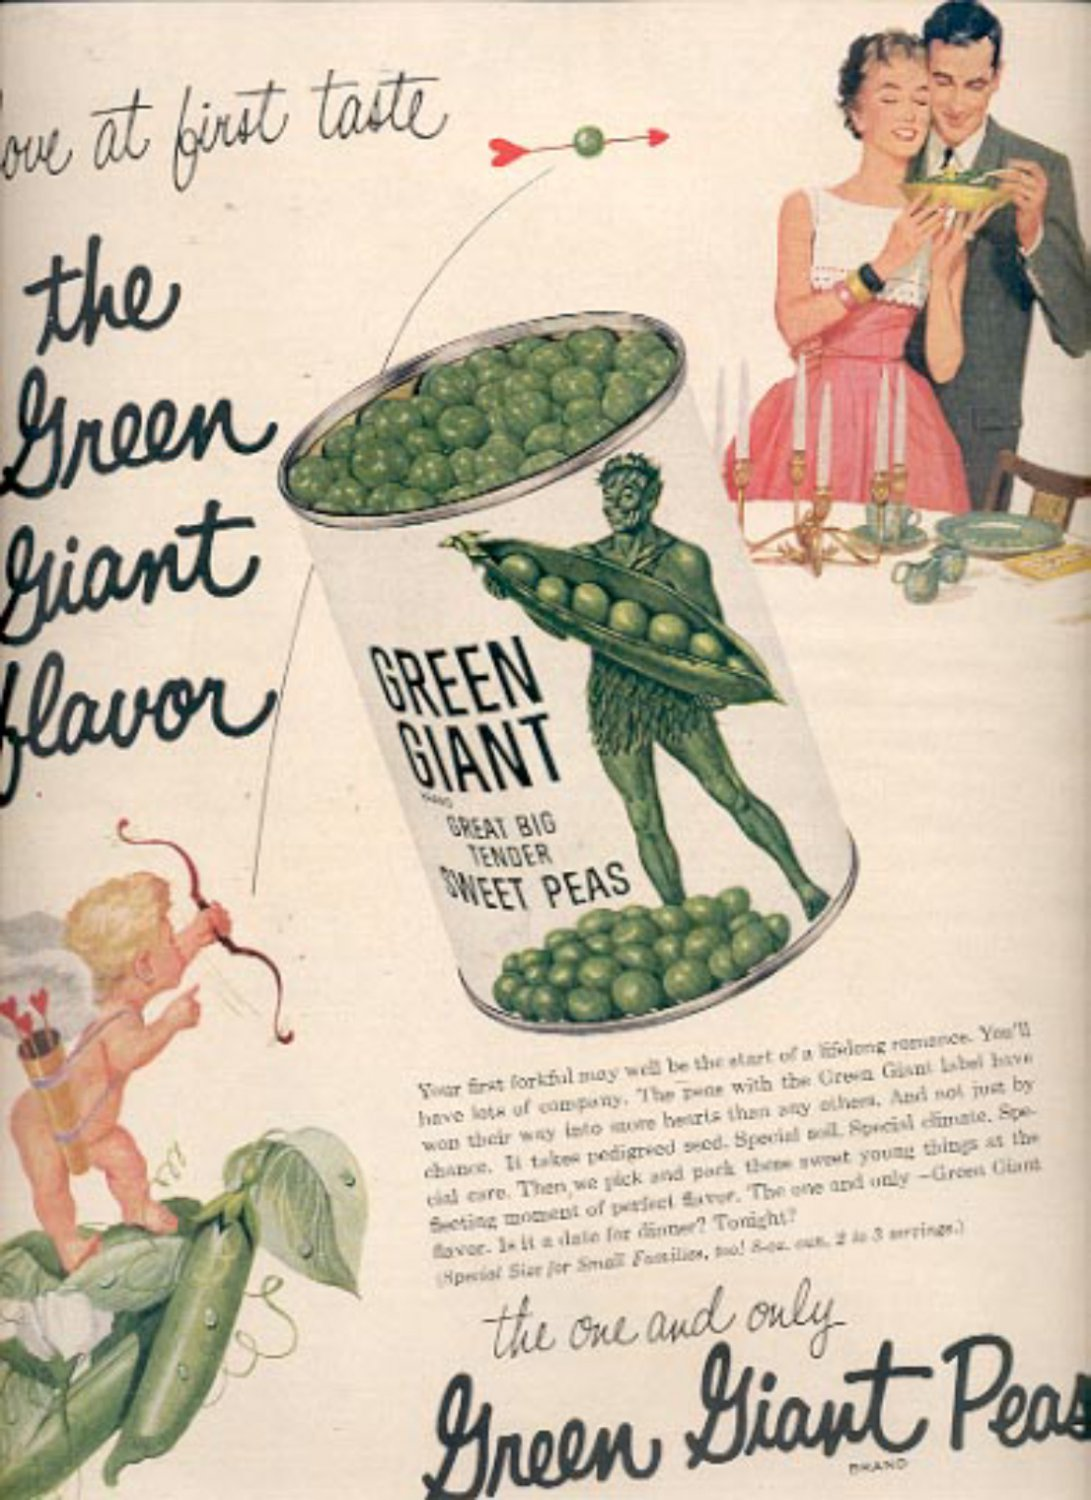 1957  Green Giant Peas  ad (# 4989)